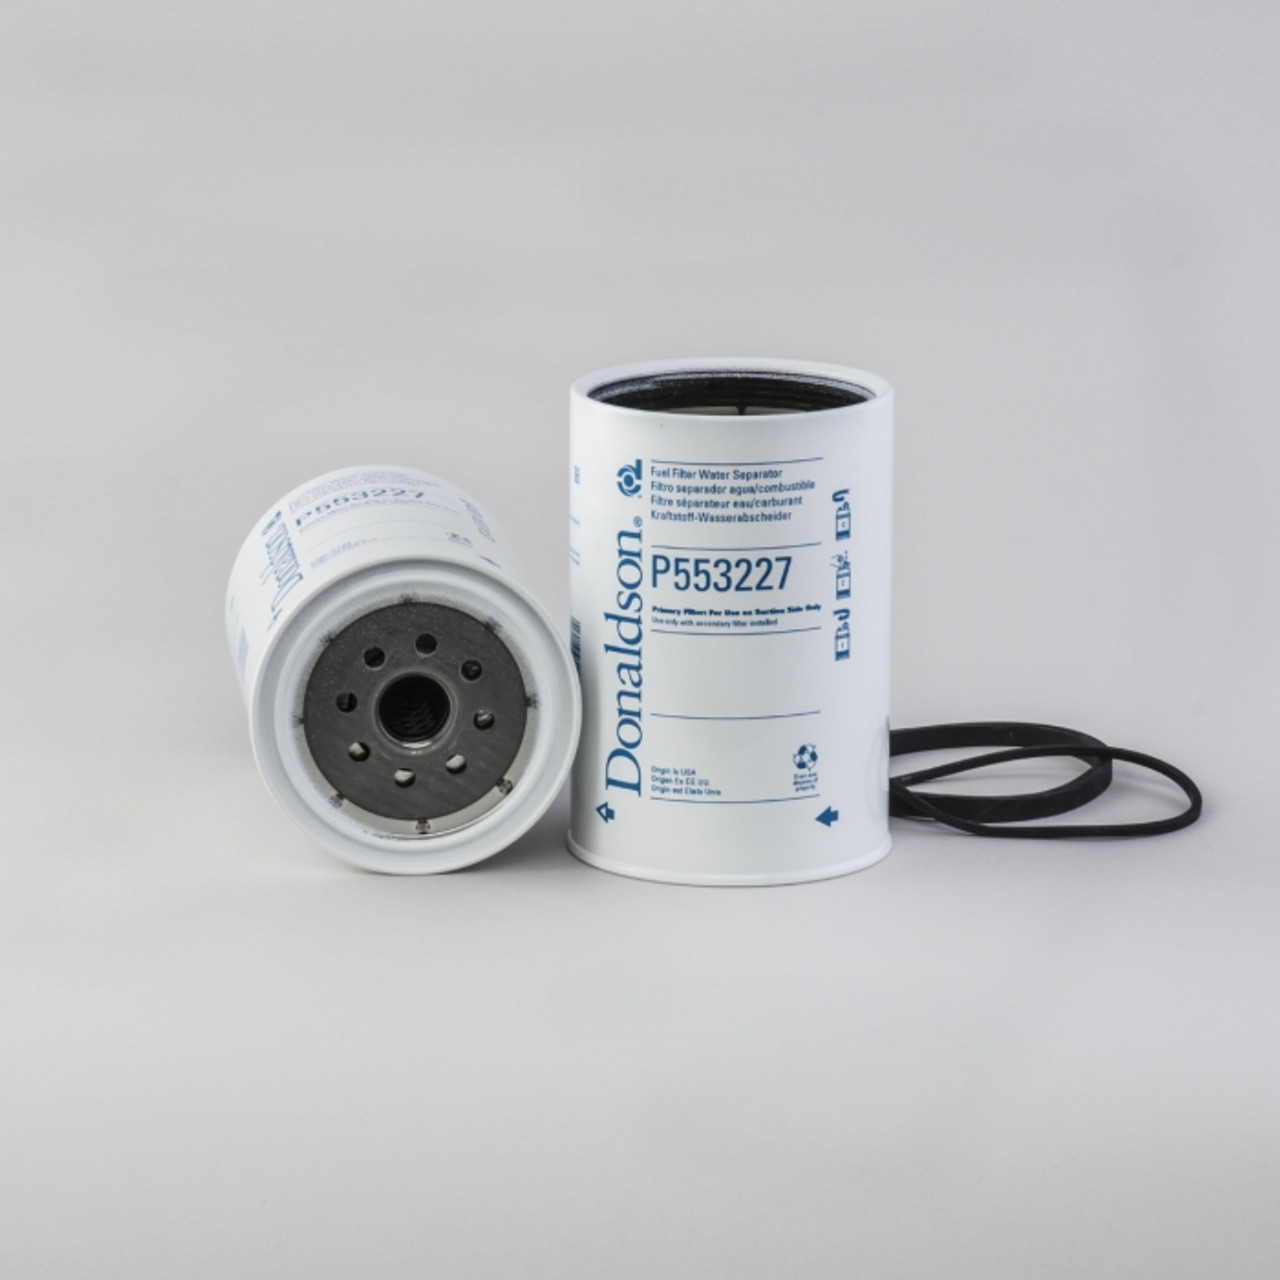 Donaldson P553227 Fuel Water Separator Filter for Spin-on Bowl- Replaces Alliance N122-R50419 / Racor S3226T